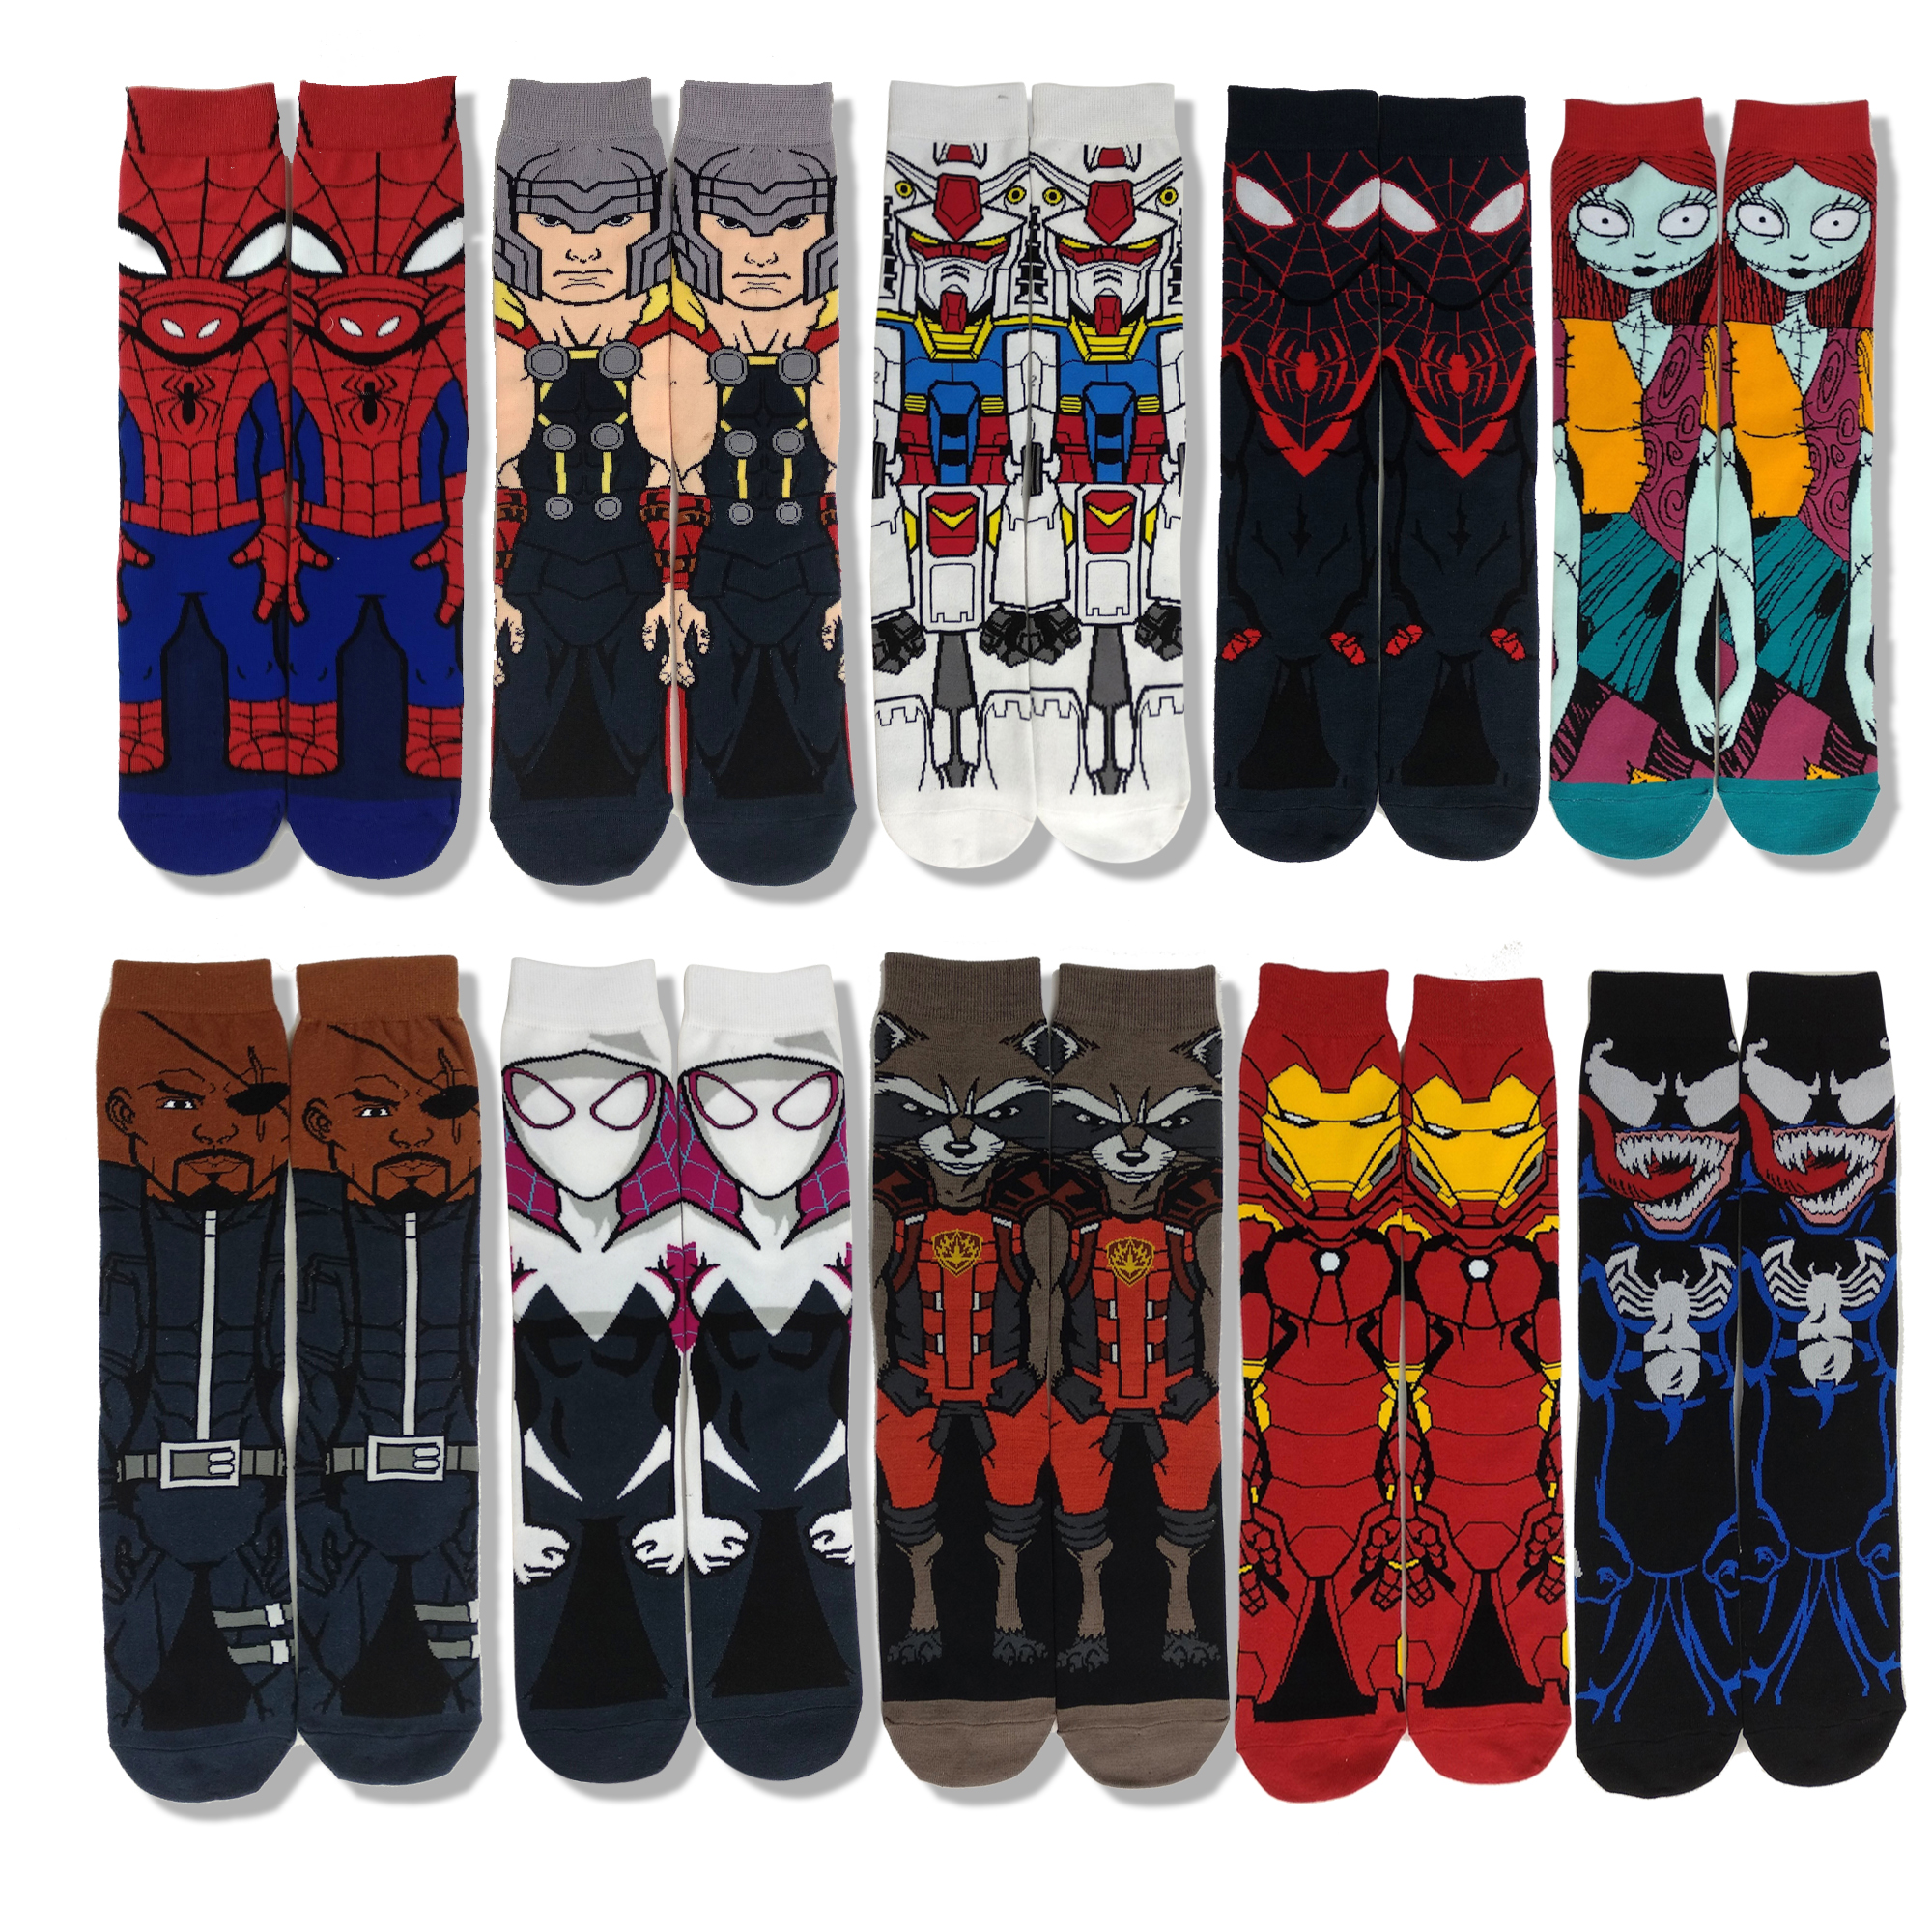 Fashion Personality Super Hero Cartoon Funny Dress Socks Spiderman Venom Colorful Fun Socks Men Comfort Warm Cotton Socks